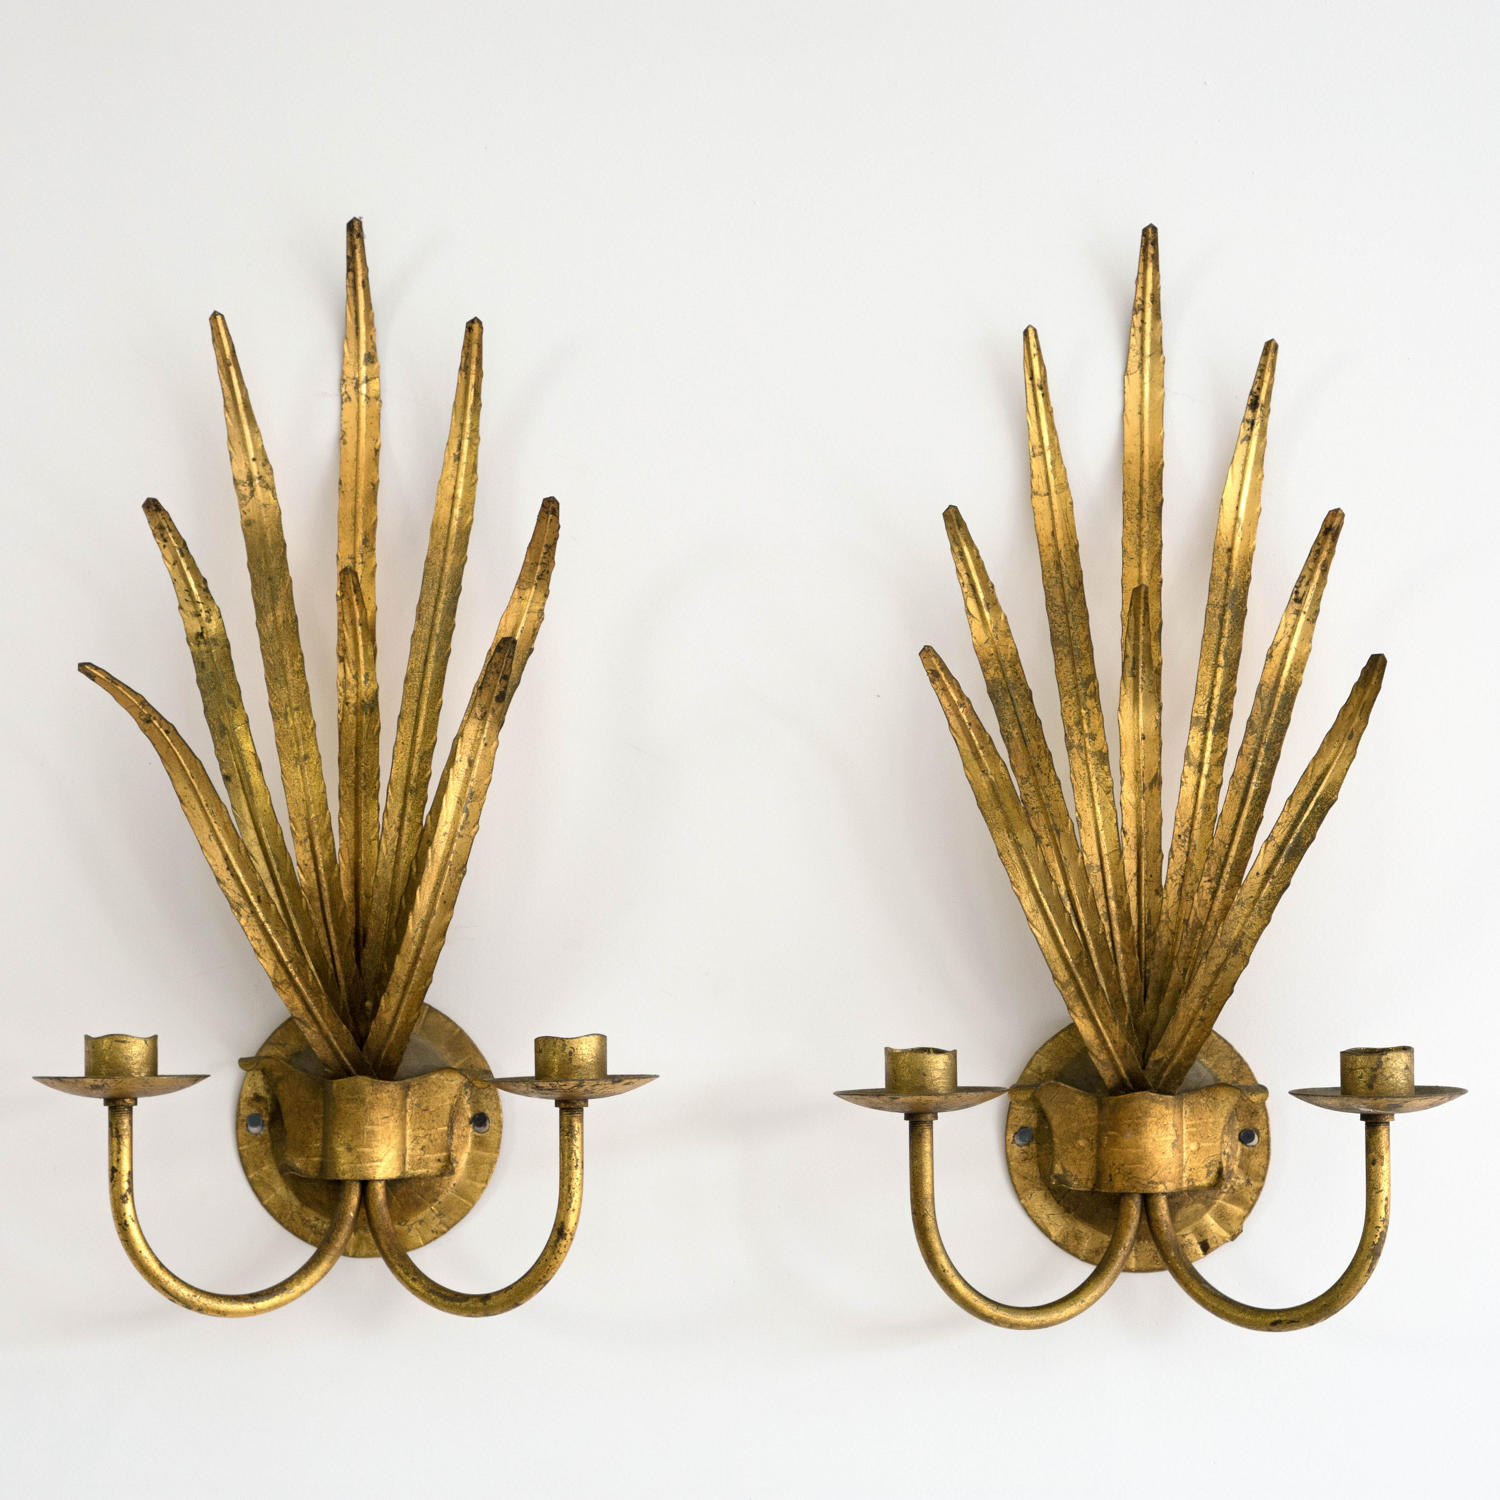 WONDERFUL PAIR OF ITALIAN GILT TOLLE LEAF WALL SCONCES